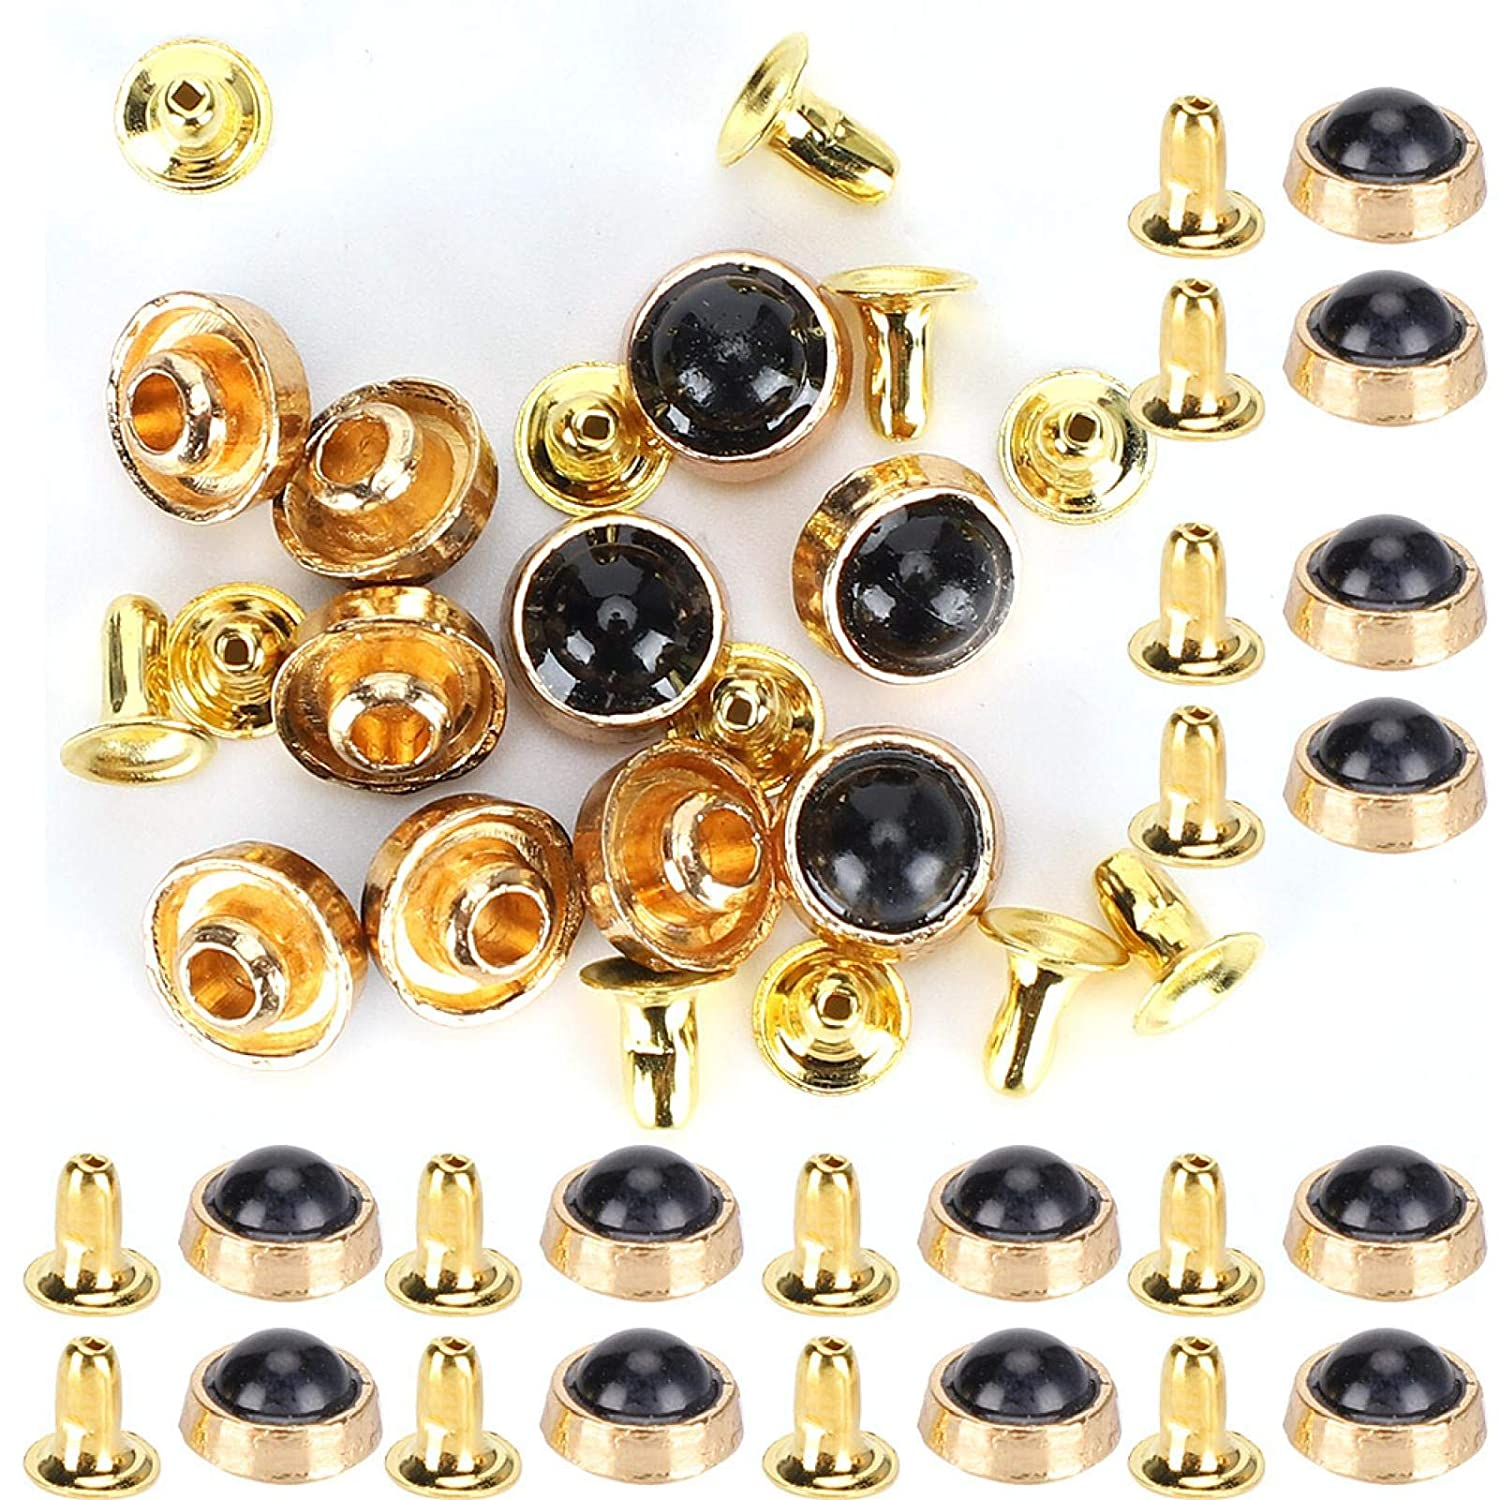 Optional Style 100 Sets Zinc Rivets Rapid 100% quality warranty Alloy Turquoise Manufacturer direct delivery